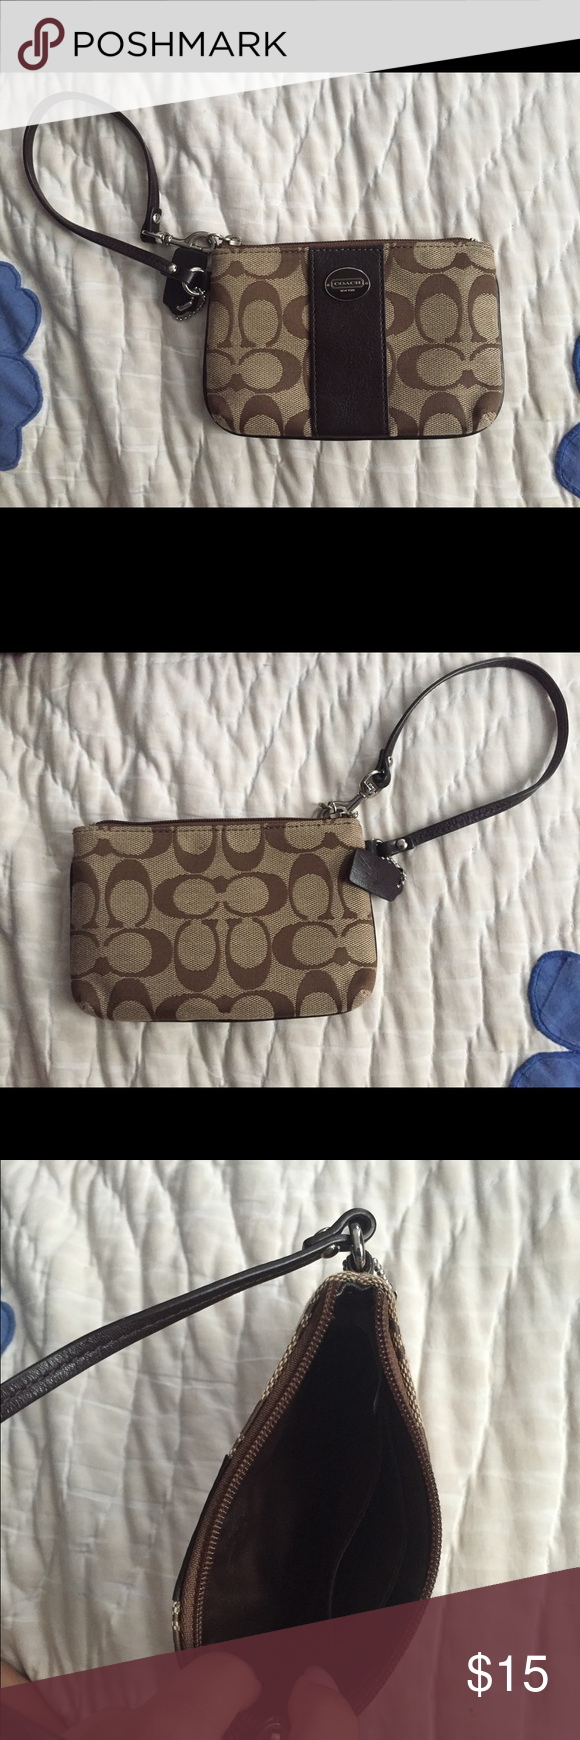 Coach wristlet Small wristlet with two slots for cards. Never used, great condition. Coach Bags Clutches & Wristlets